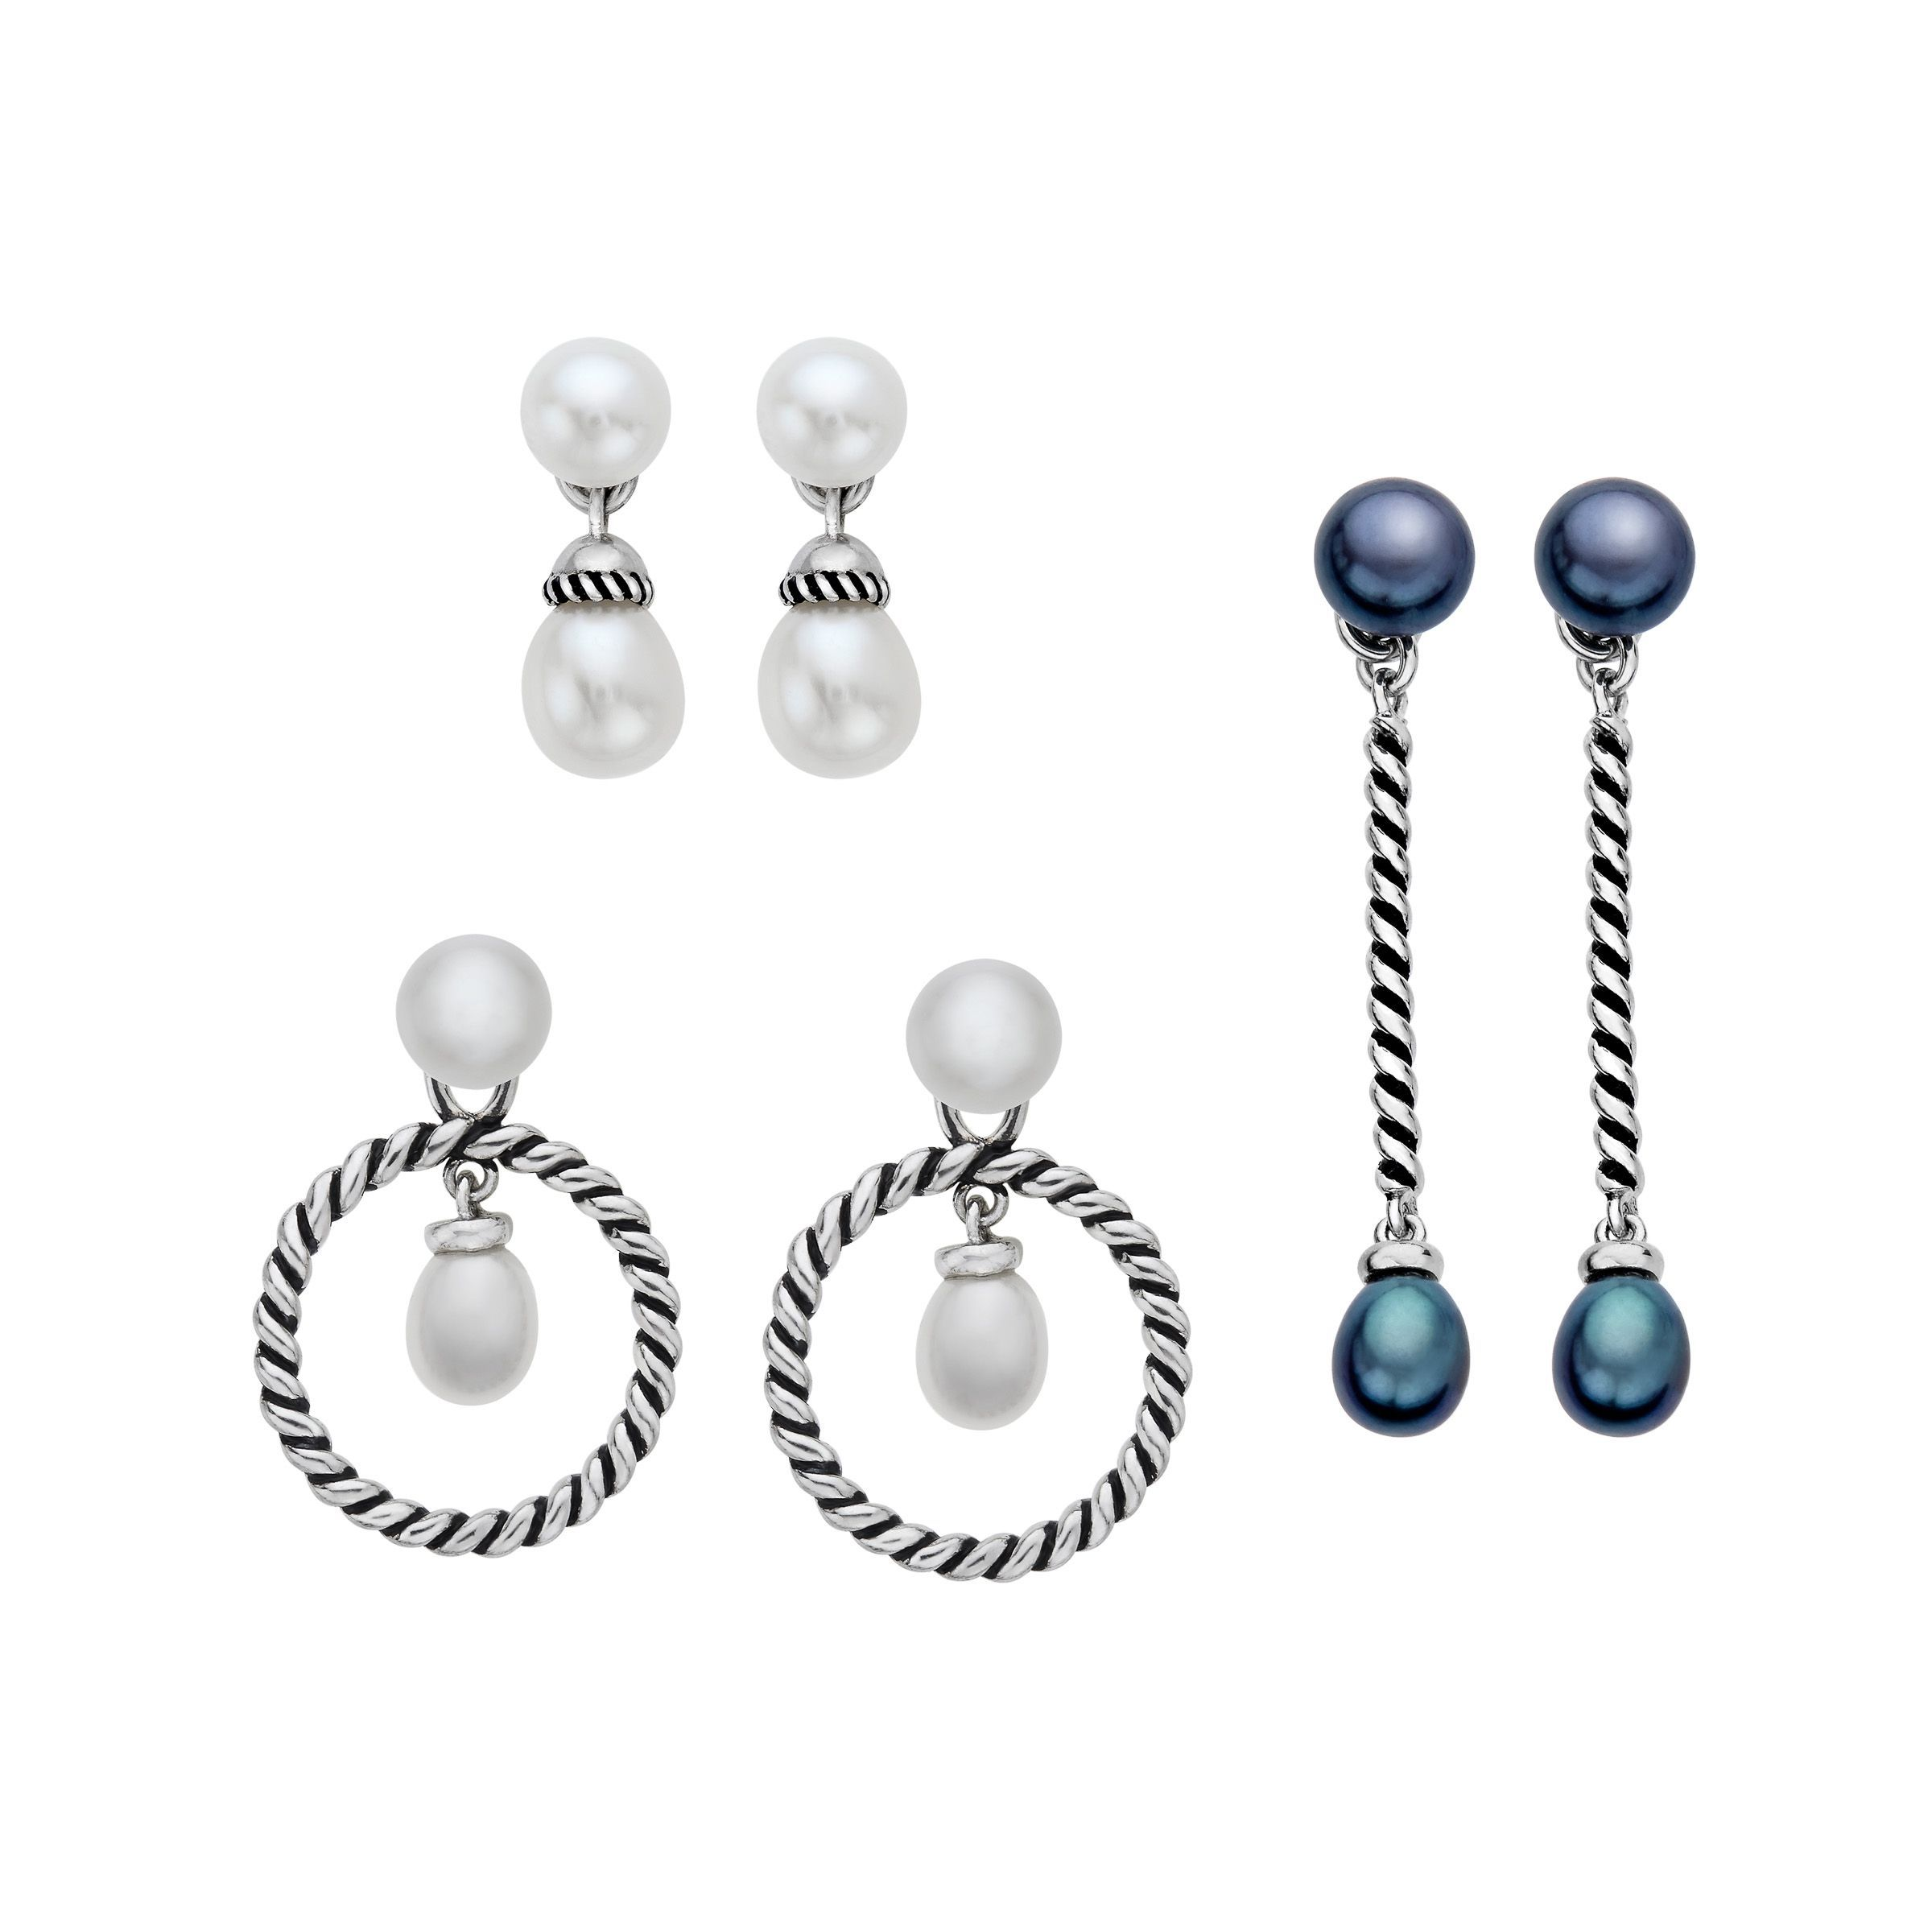 jewelry pearl earrings freshwater interchangeable sterling in drop silver backs with mm